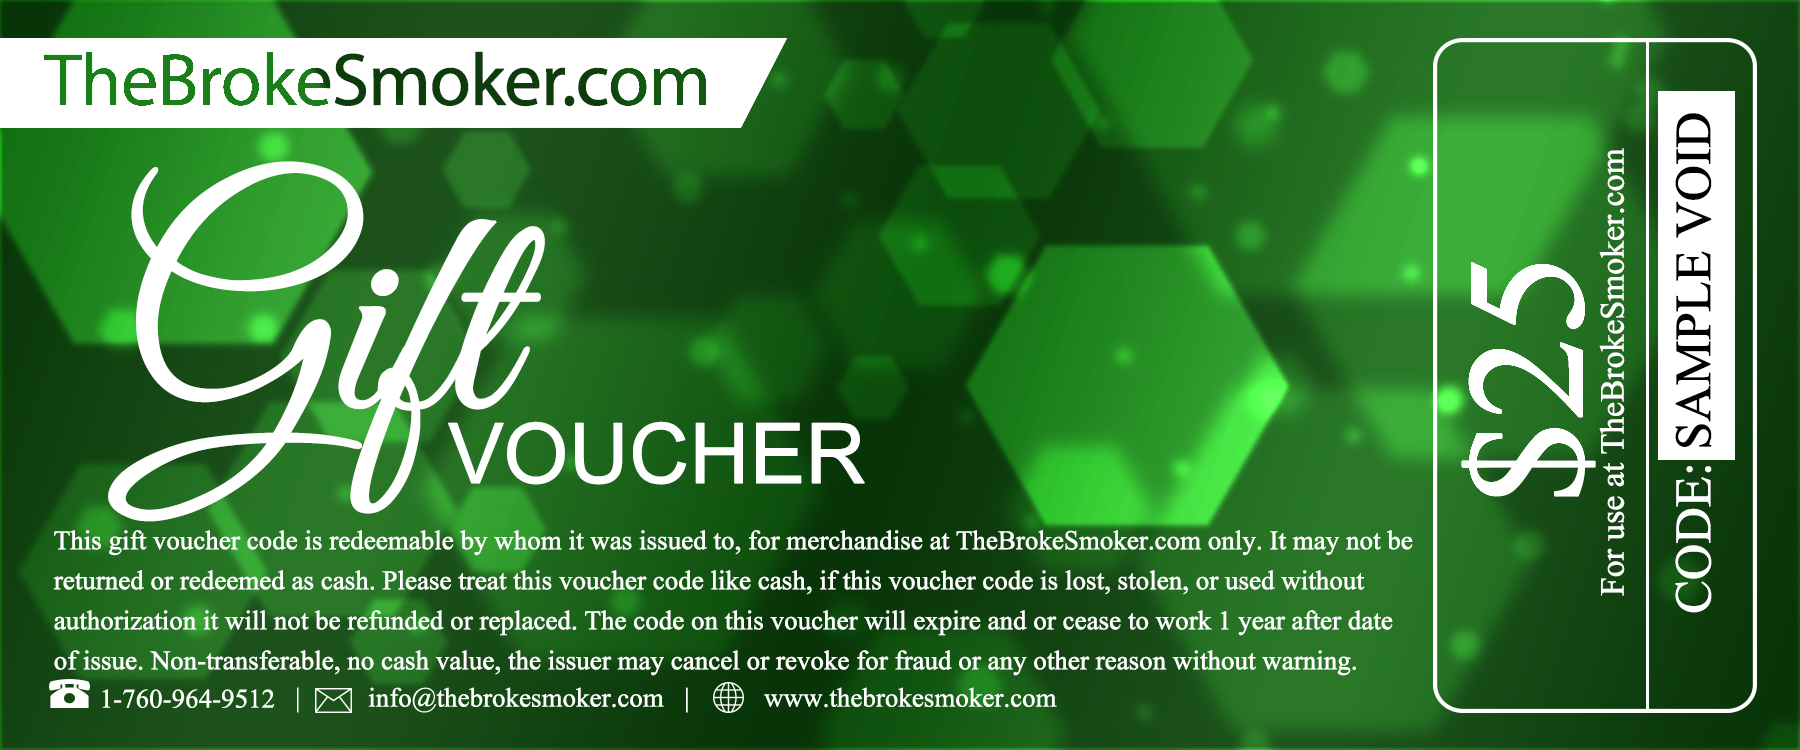 $25 Dollar Gift Voucher / Gift Certificate from TheBokeSmoker.com buy now from The Broke Smoker